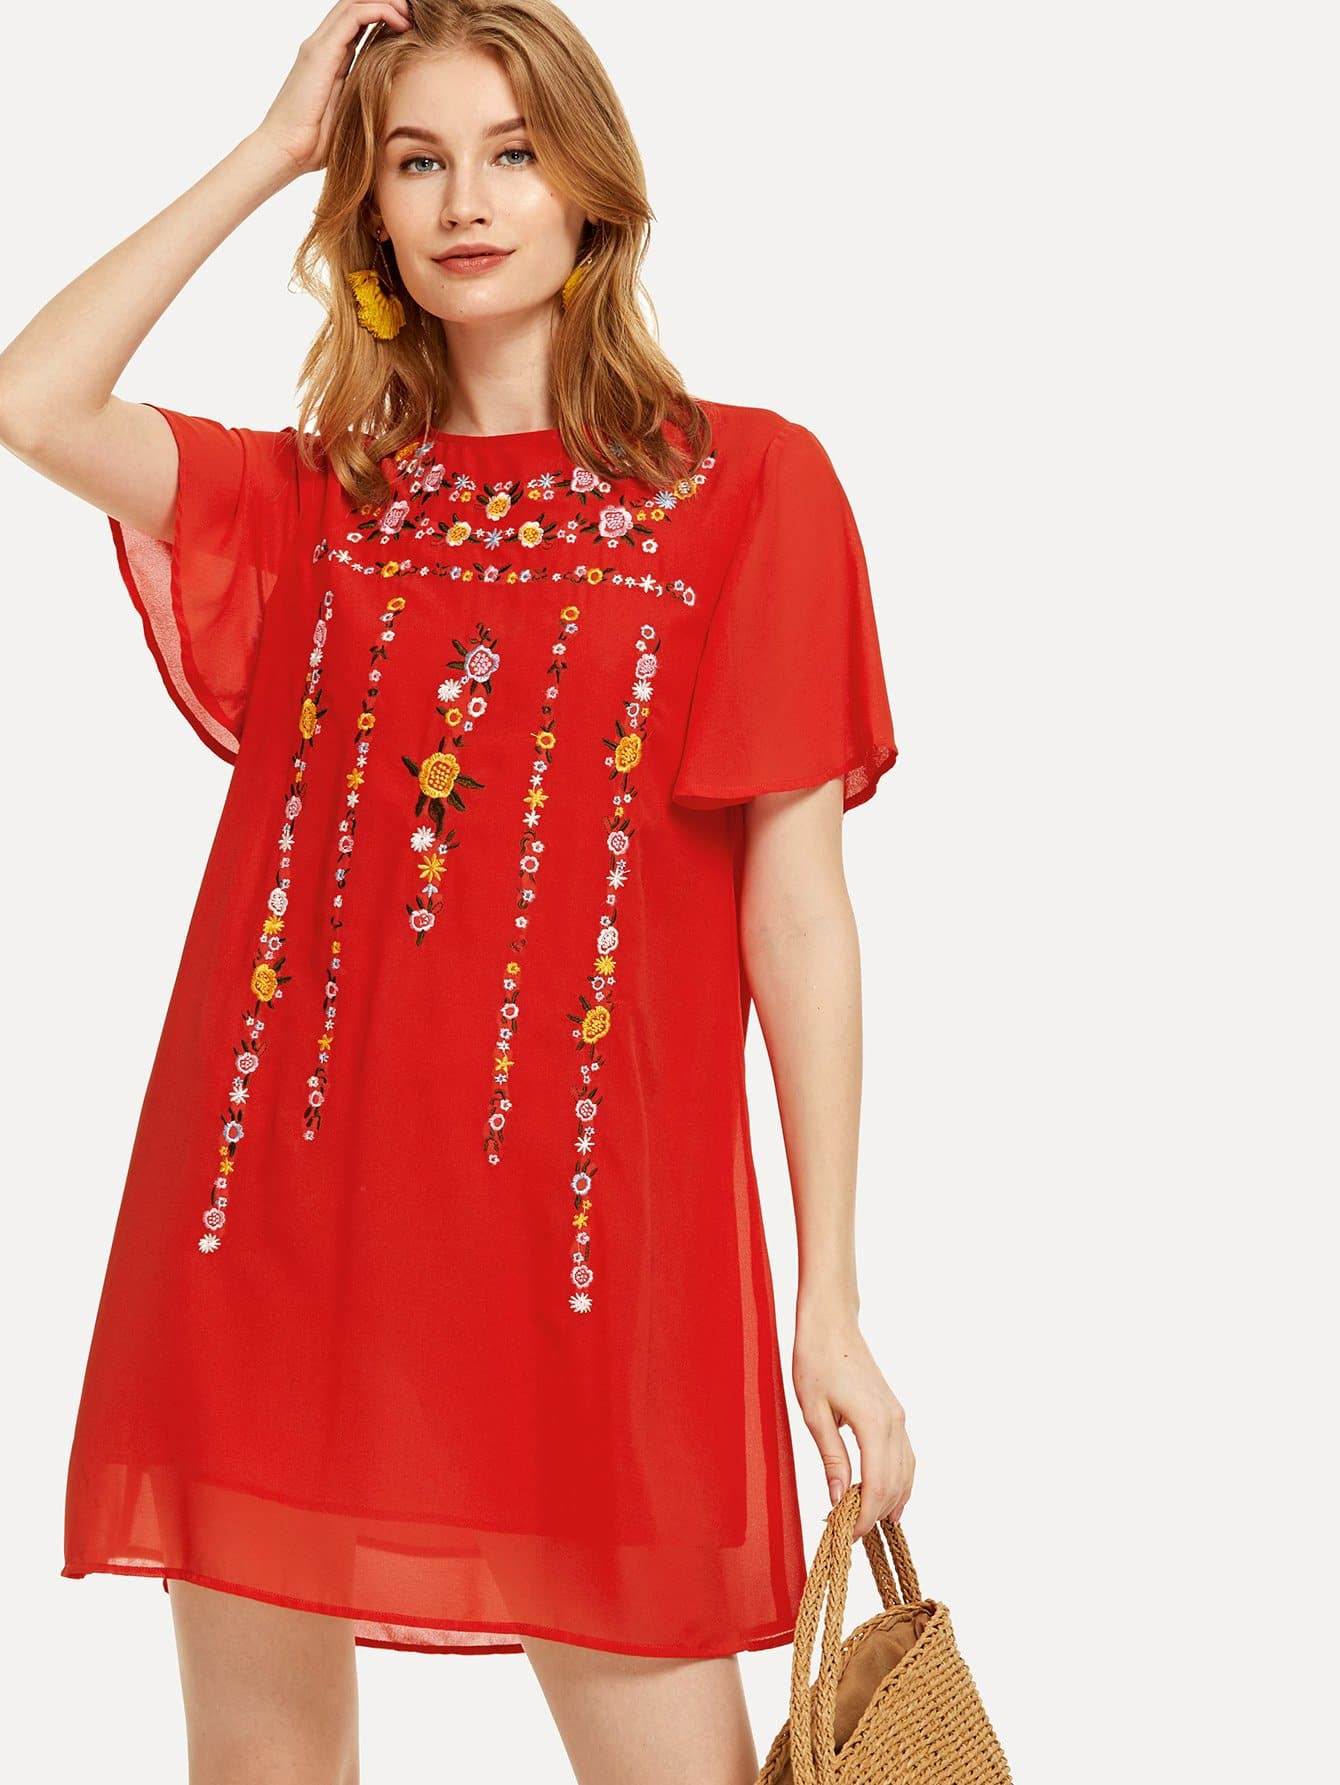 Floral Embroidered Flutter Sleeve Tunic Dress flutter sleeve elastic waist floral dress